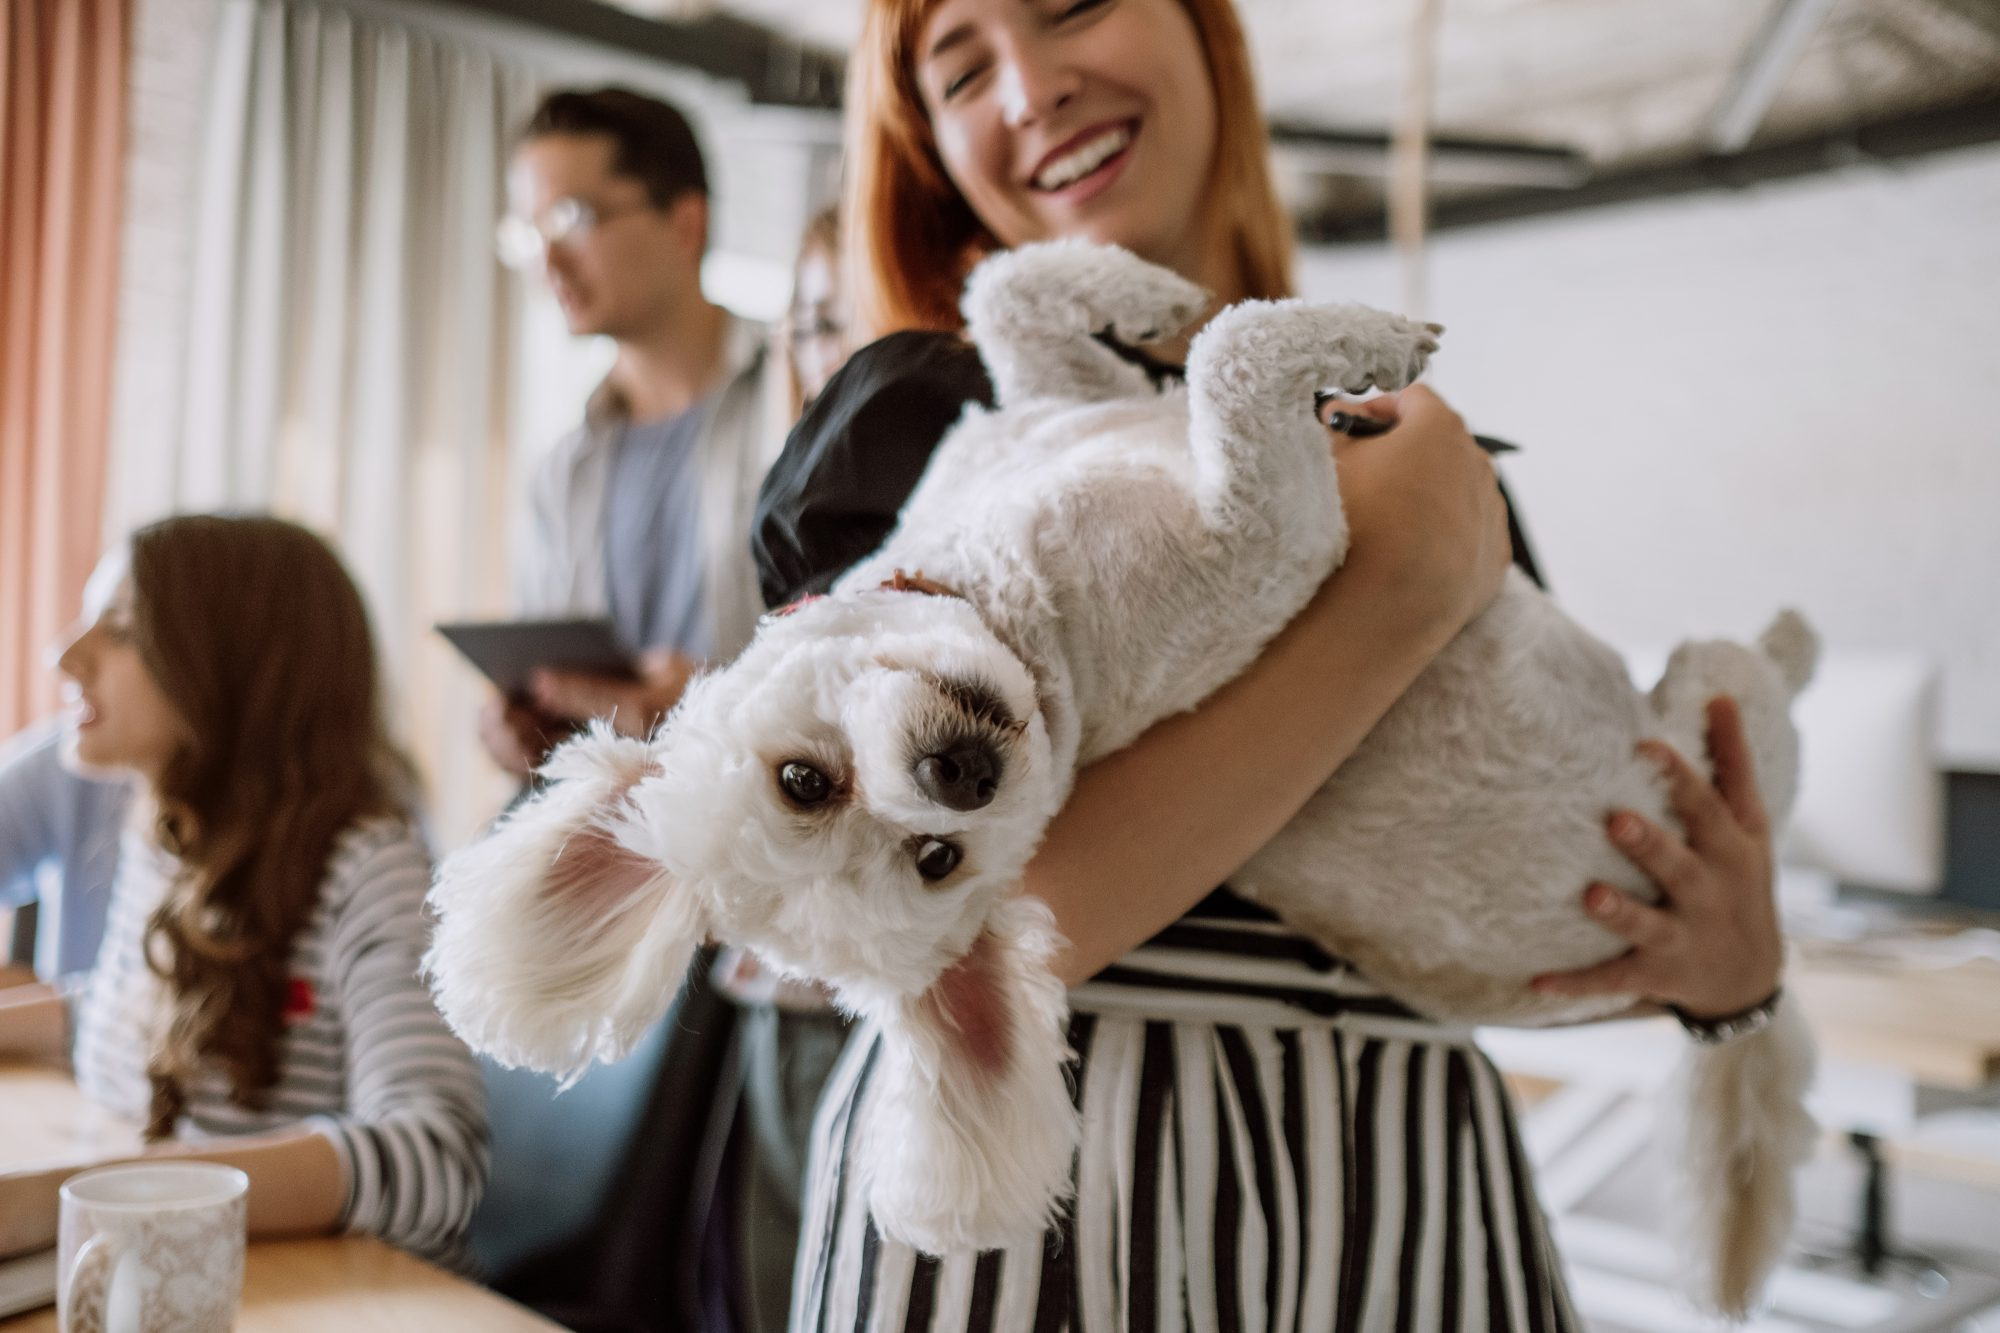 Smiling woman holds her dog in her arms in a office setting.